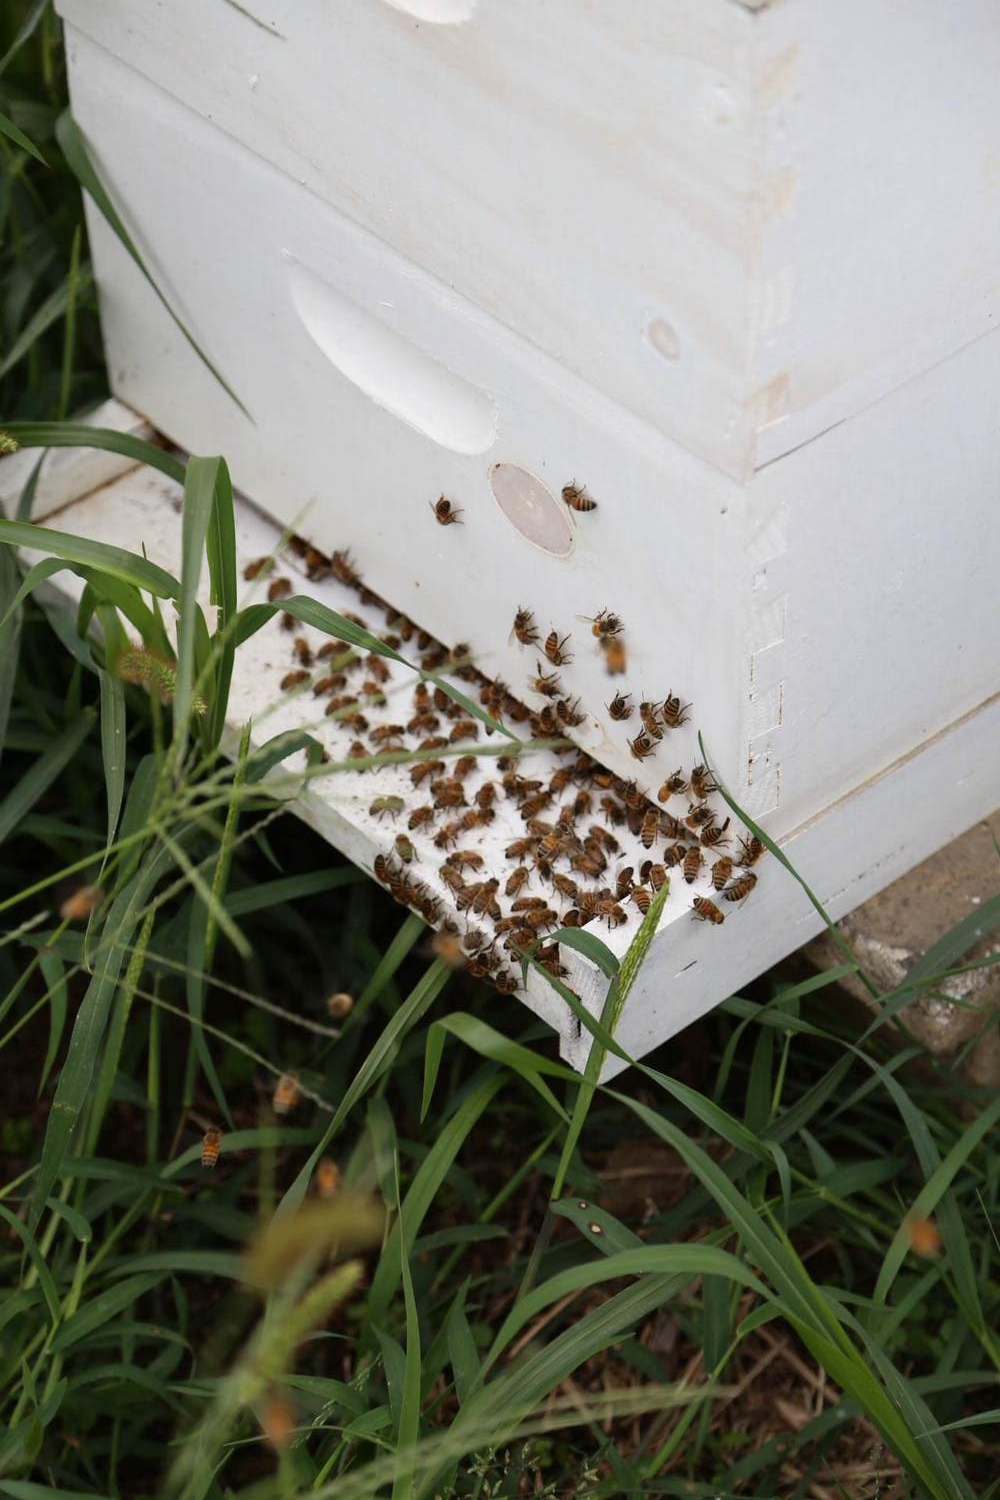 Honey bees at the farm.